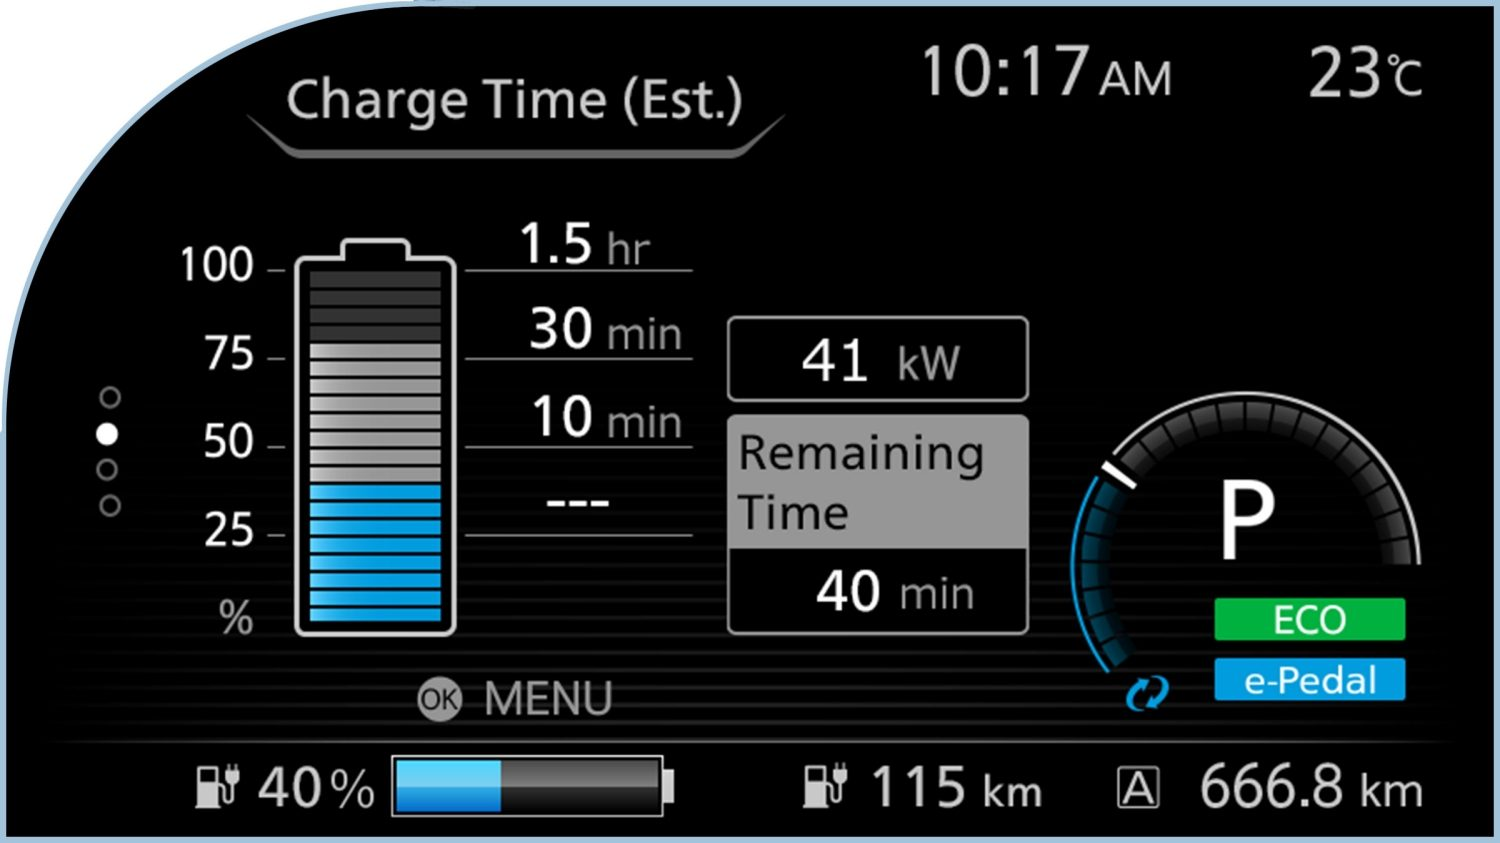 Nissan LEAF digital information display showing range